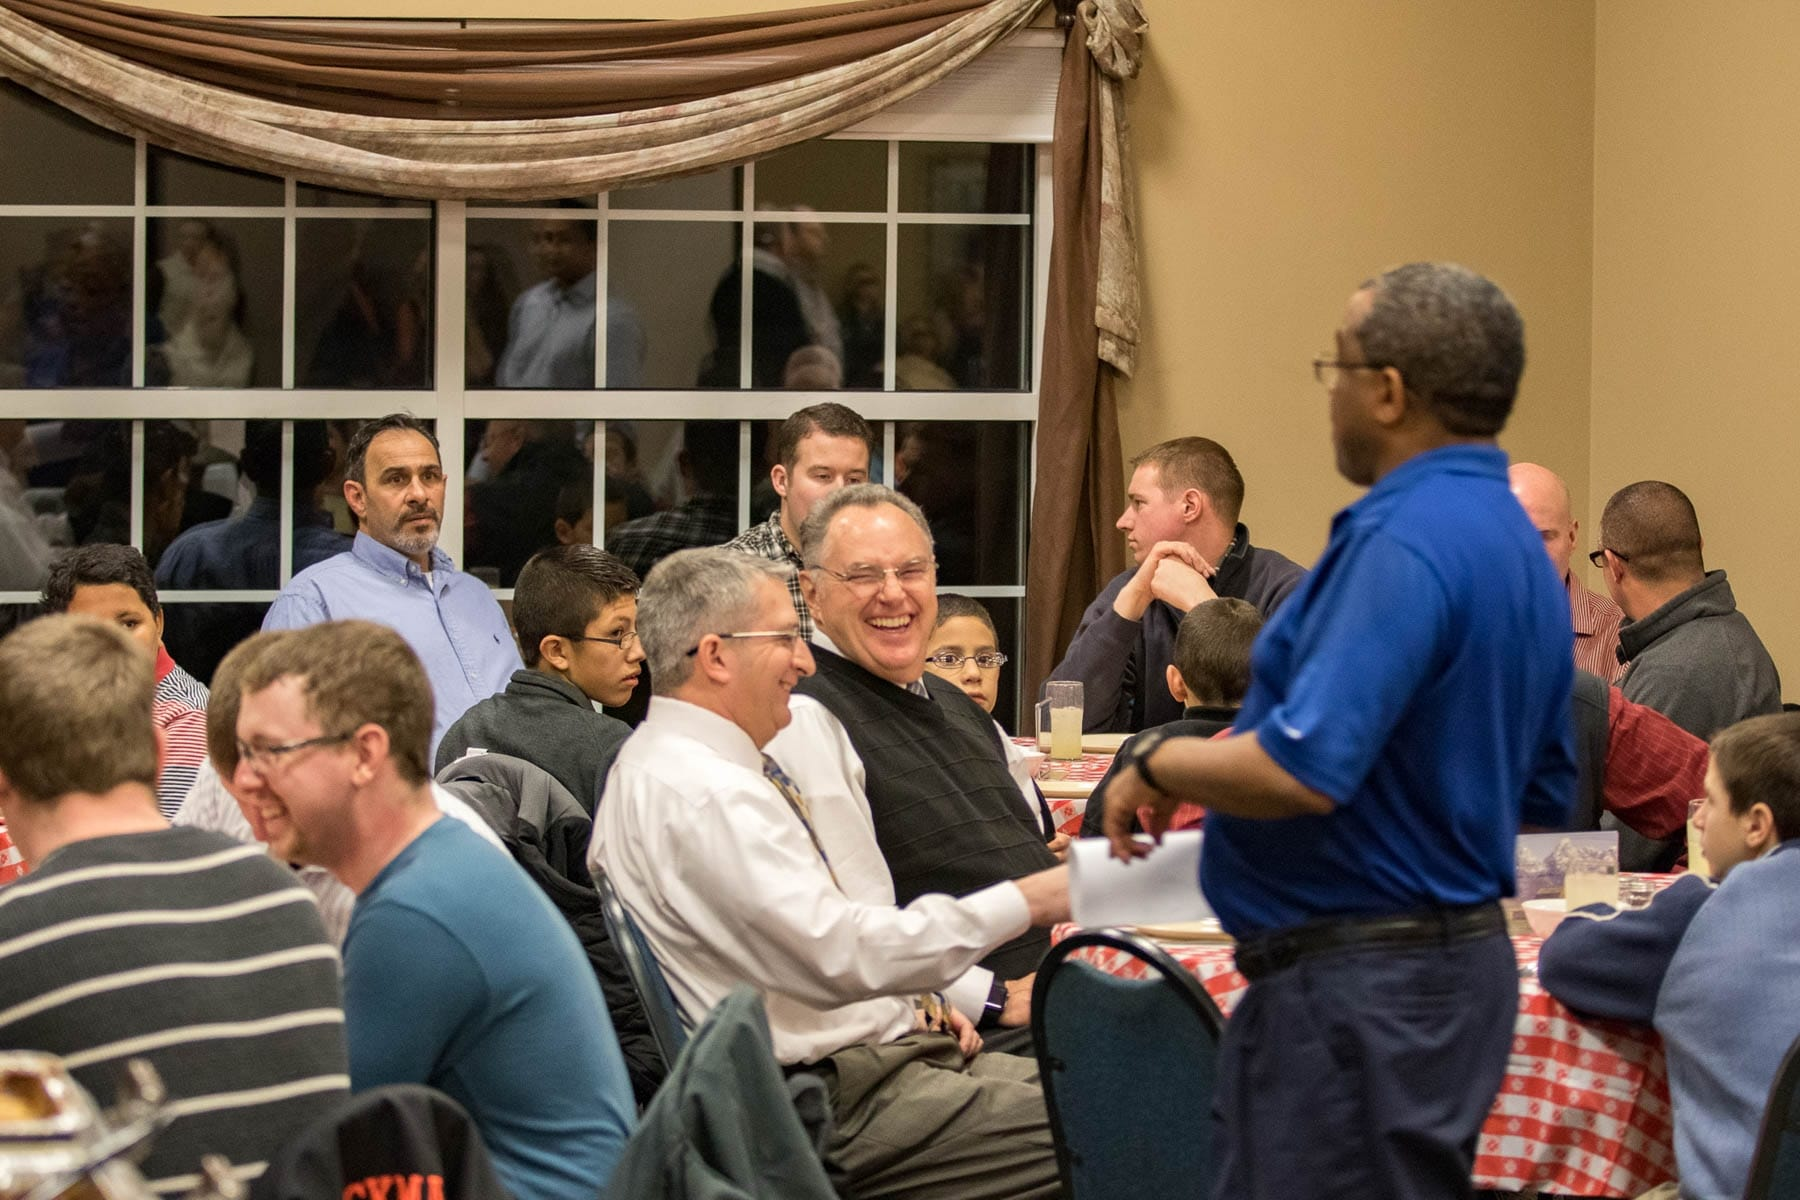 Fairhaven Baptist Church Men's Barbeque 2016 (3 of 12)